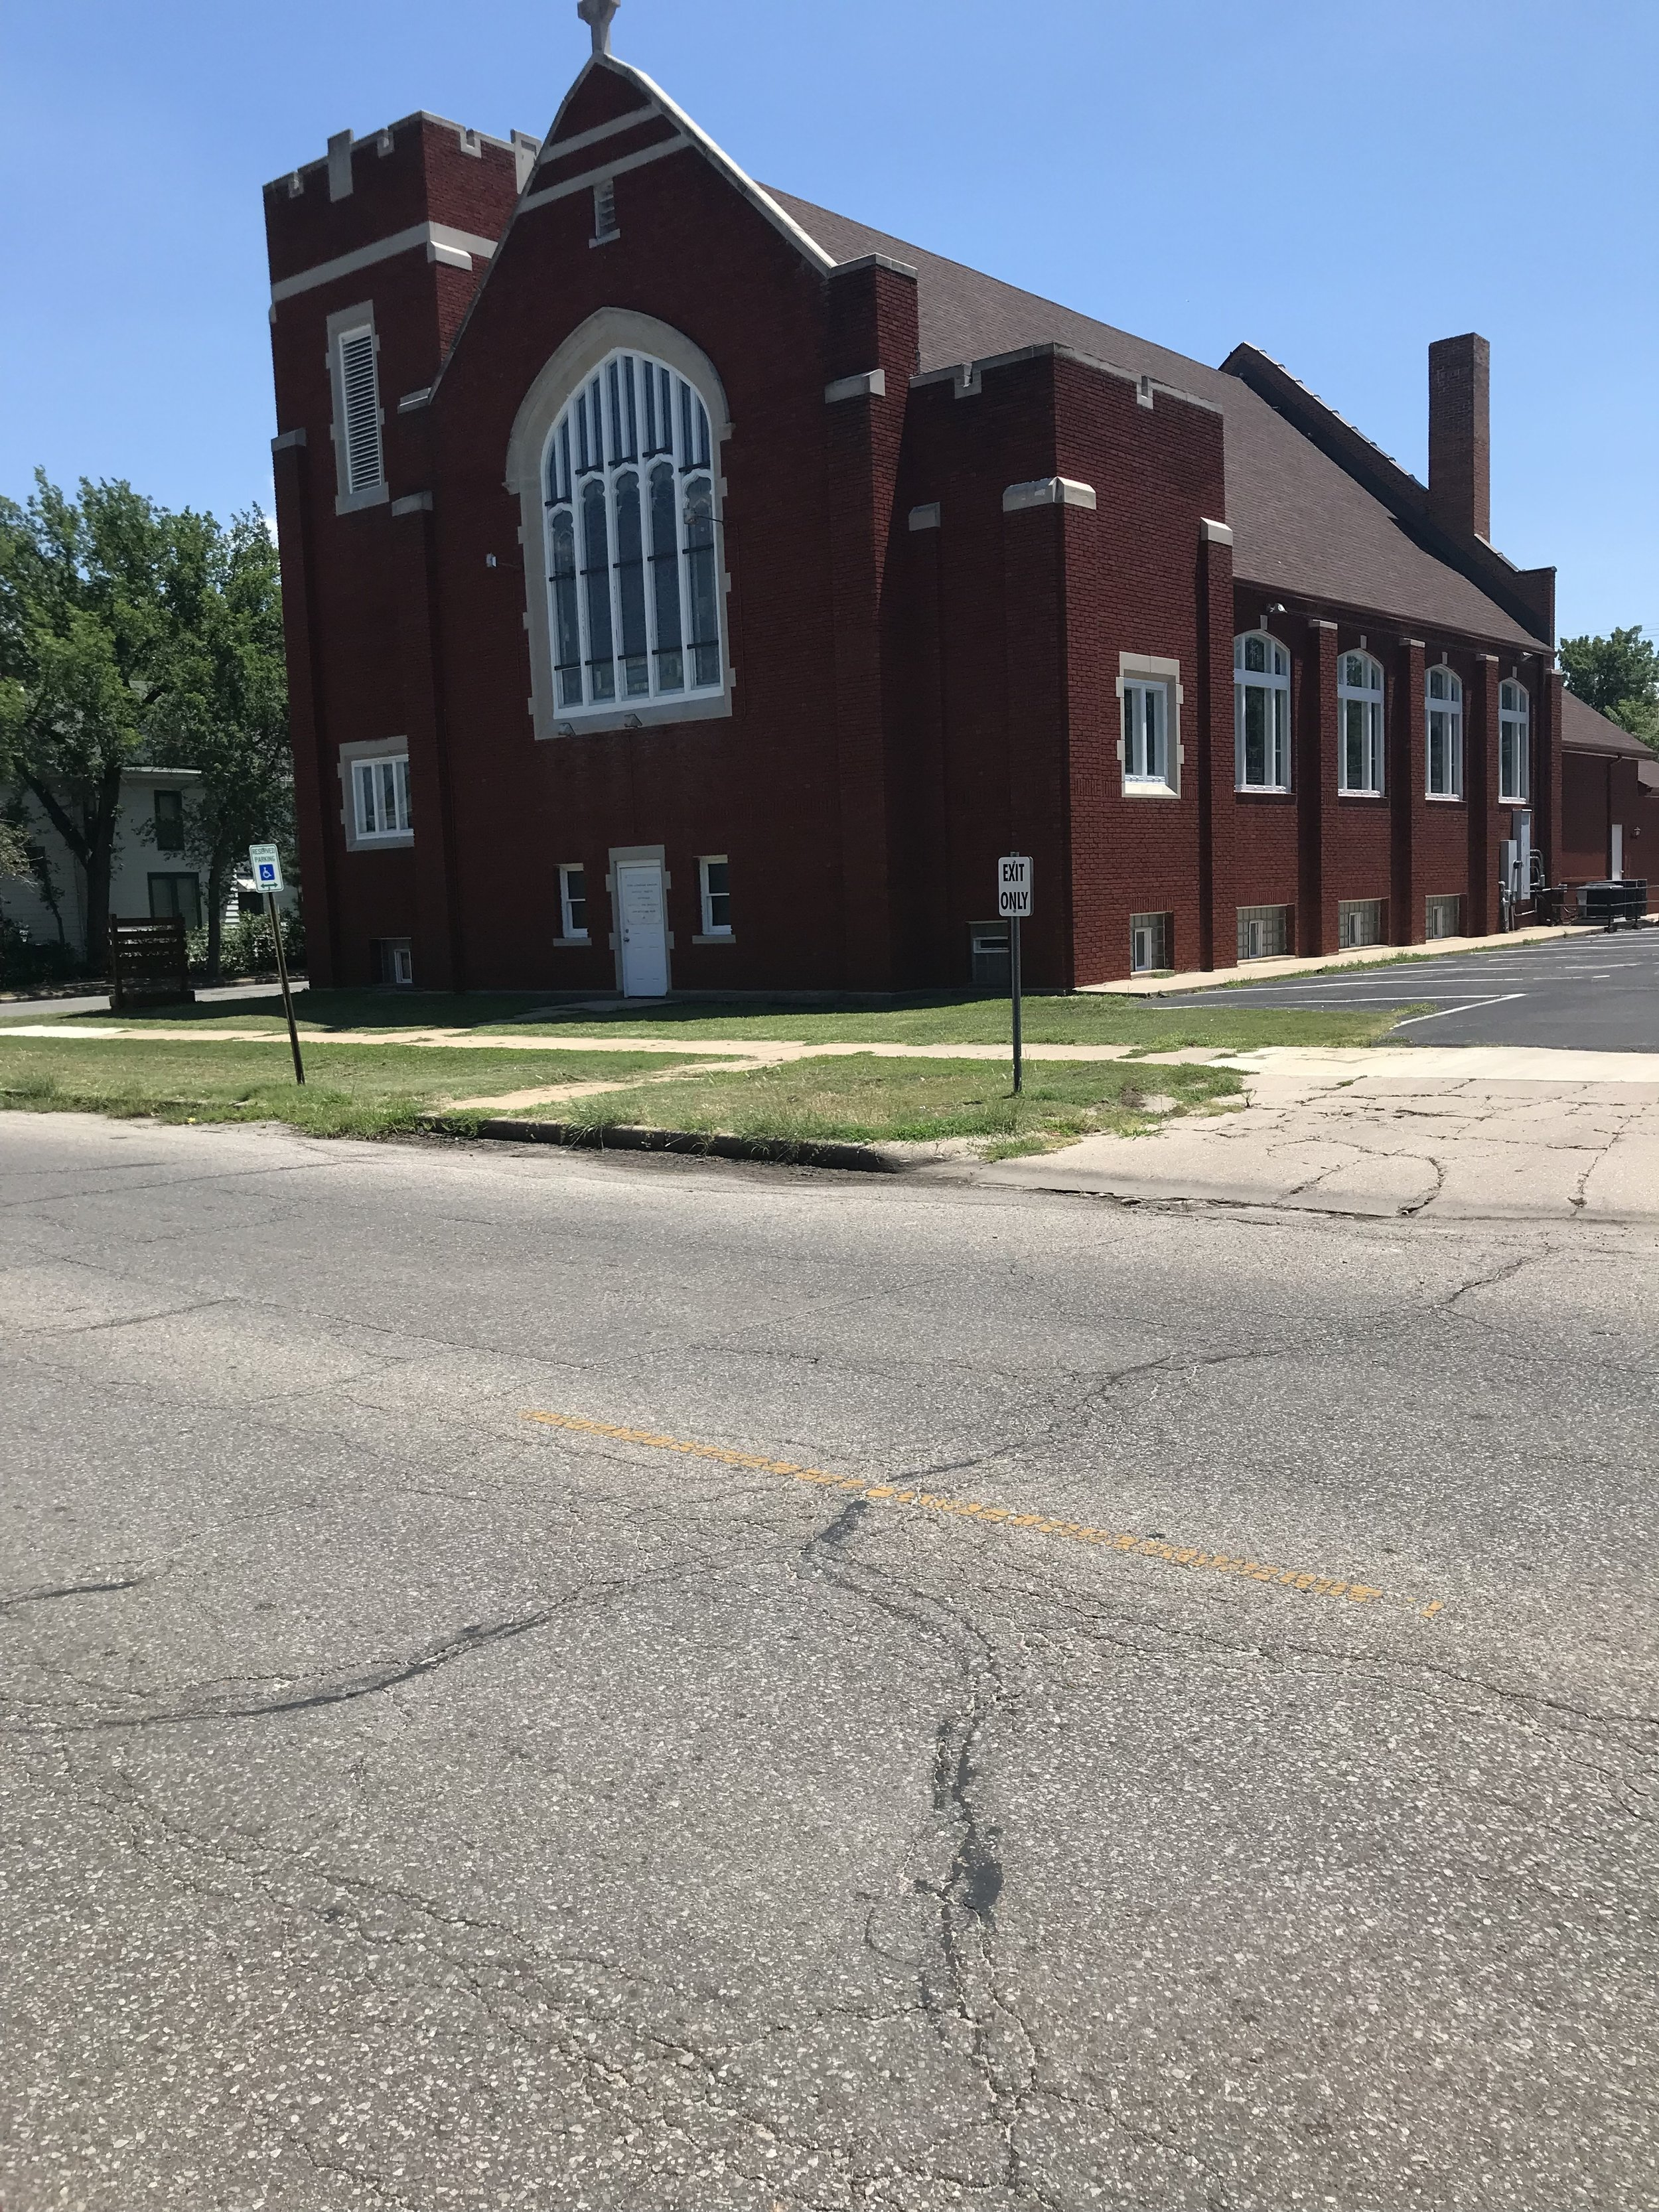 Zion Lutheran Church in Hutchinson that hosts through-cyclists (hostel-like). We were thankful for the shower, beds, and AC here after our record-breaking 70-mile day!